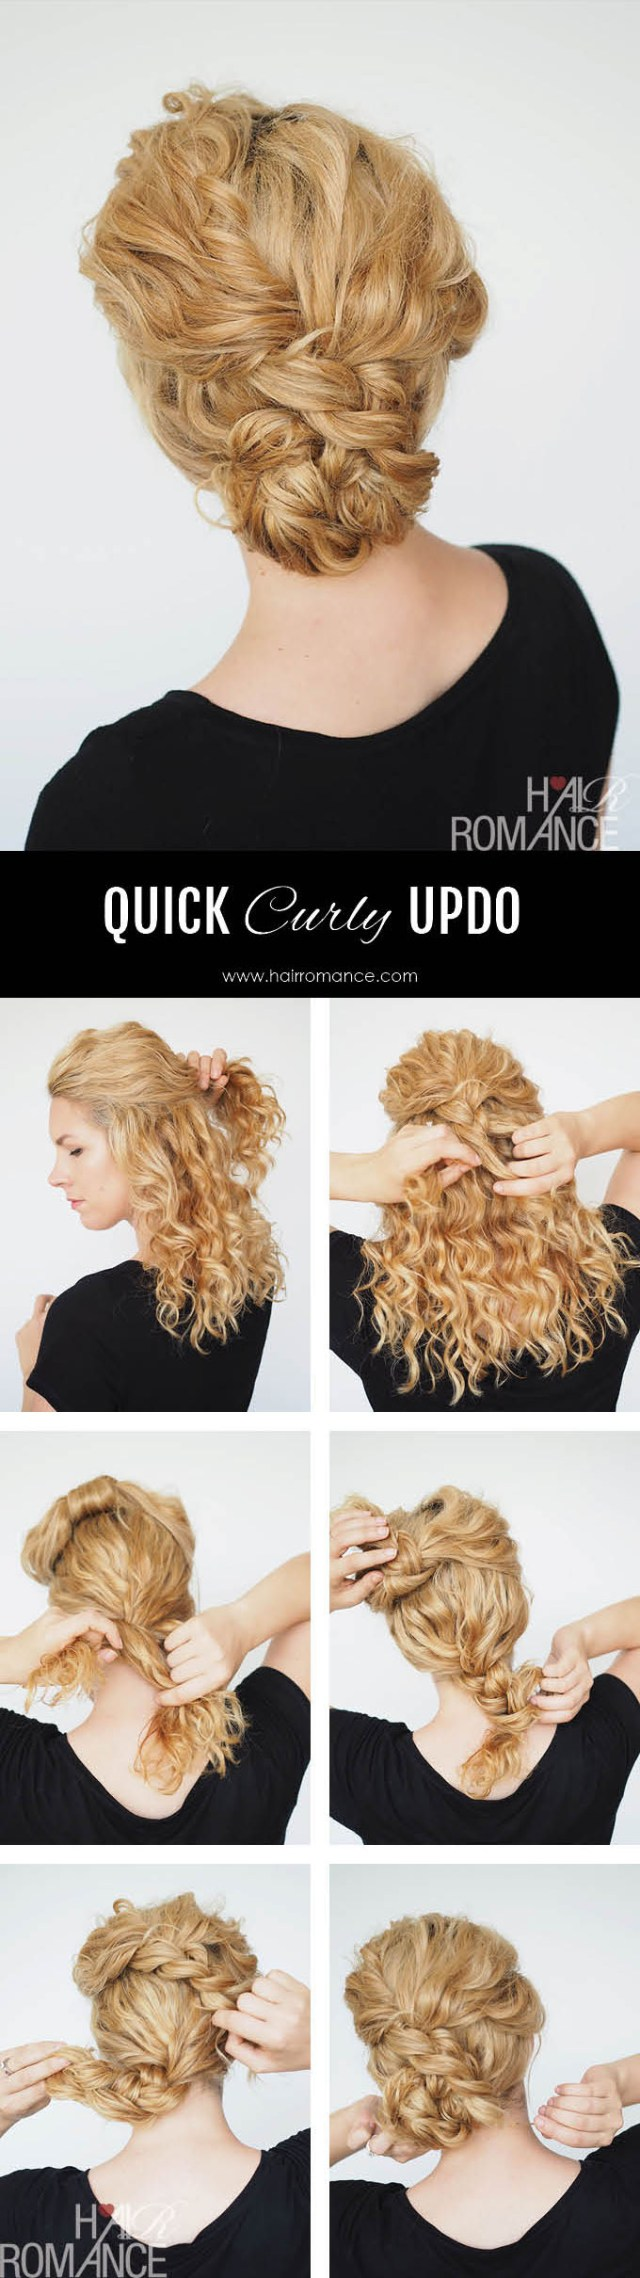 2 min updo for curly hair - hair romance